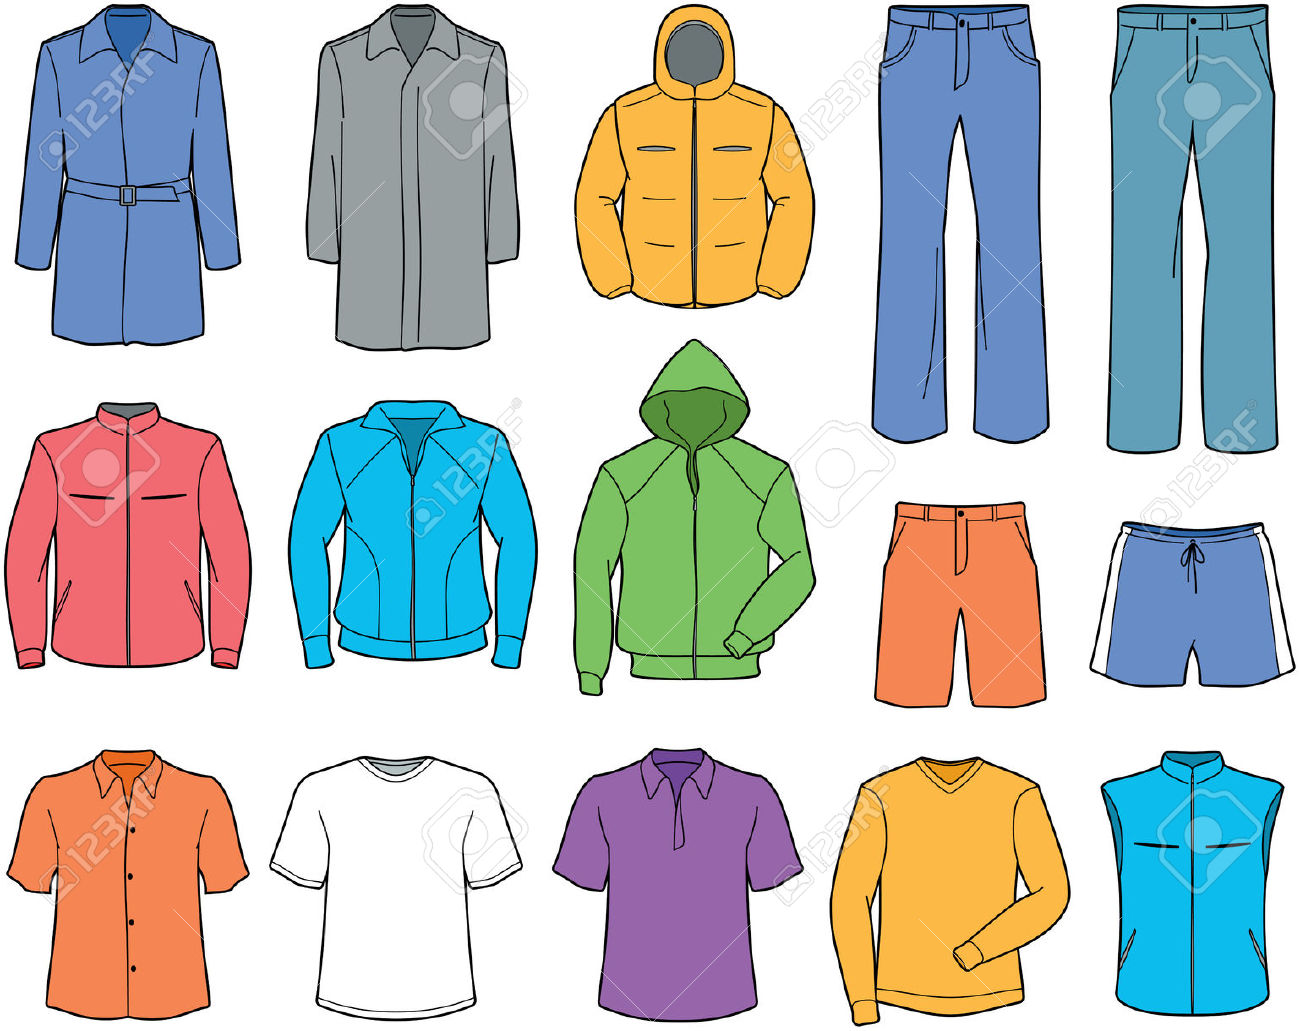 Clothes clipart - Clipground